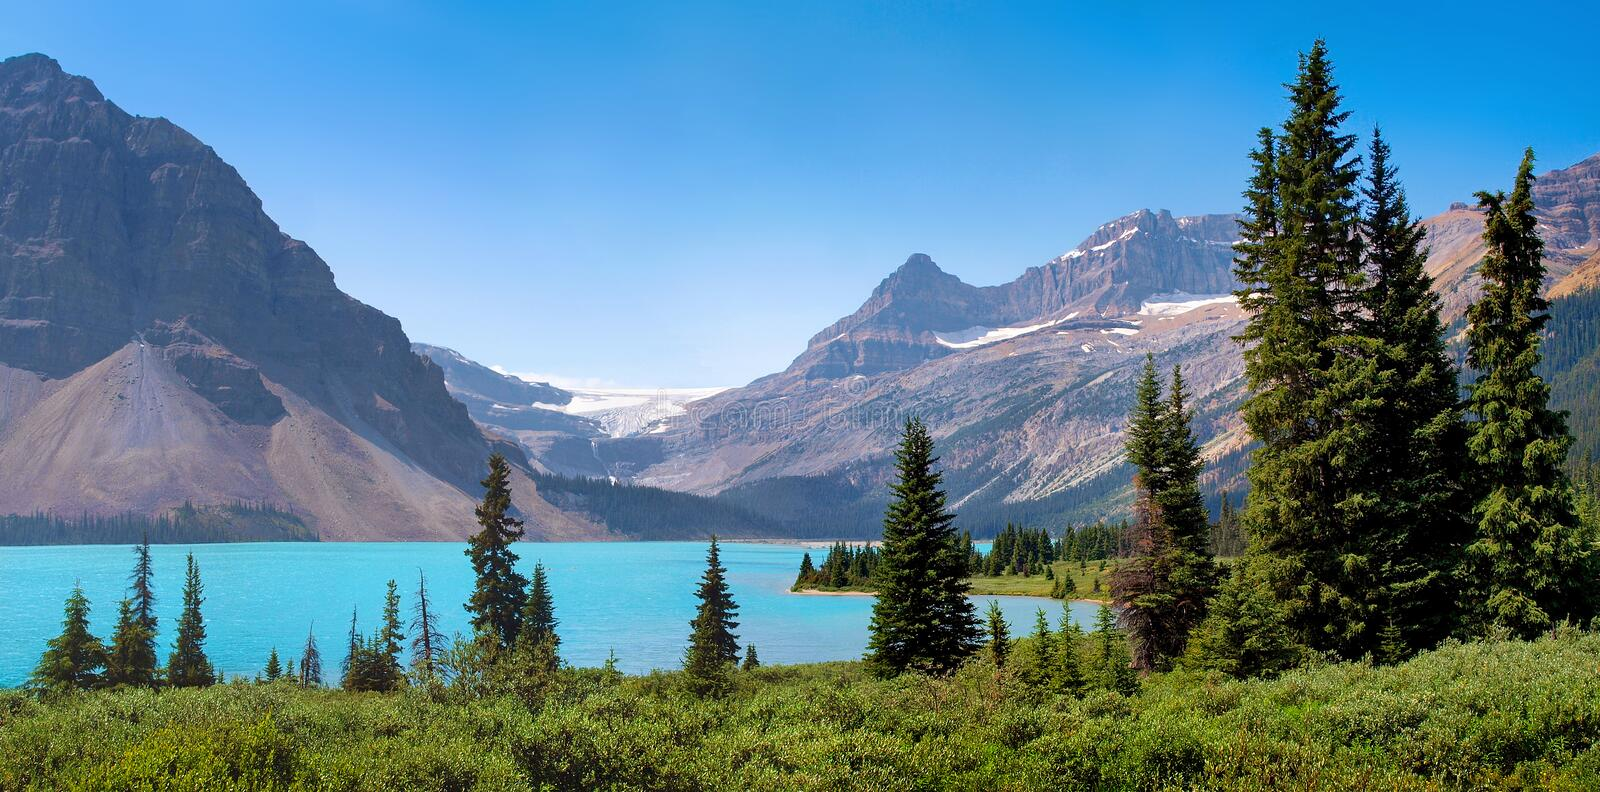 Canadian wilderness in Banff National Park, Canada. Scenic nature landscape with Rocky Mountains in the background as seen at Bow Lake, Banff National Park stock photos